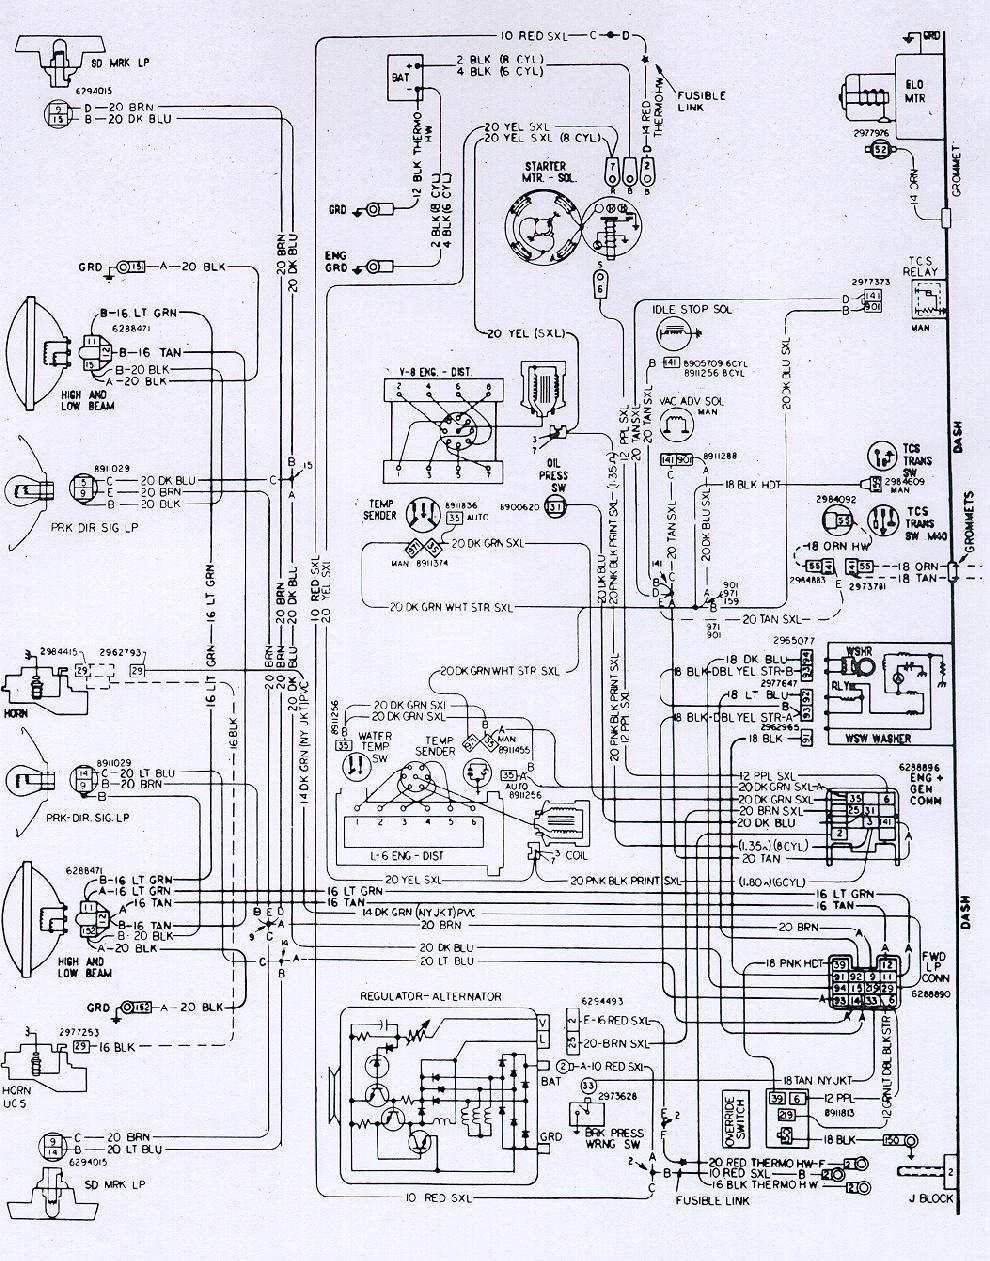 medium resolution of 1980 camaro wiring harness alarm wiring diagram operations 1980 camaro wiring diagram wiring diagram show 1980